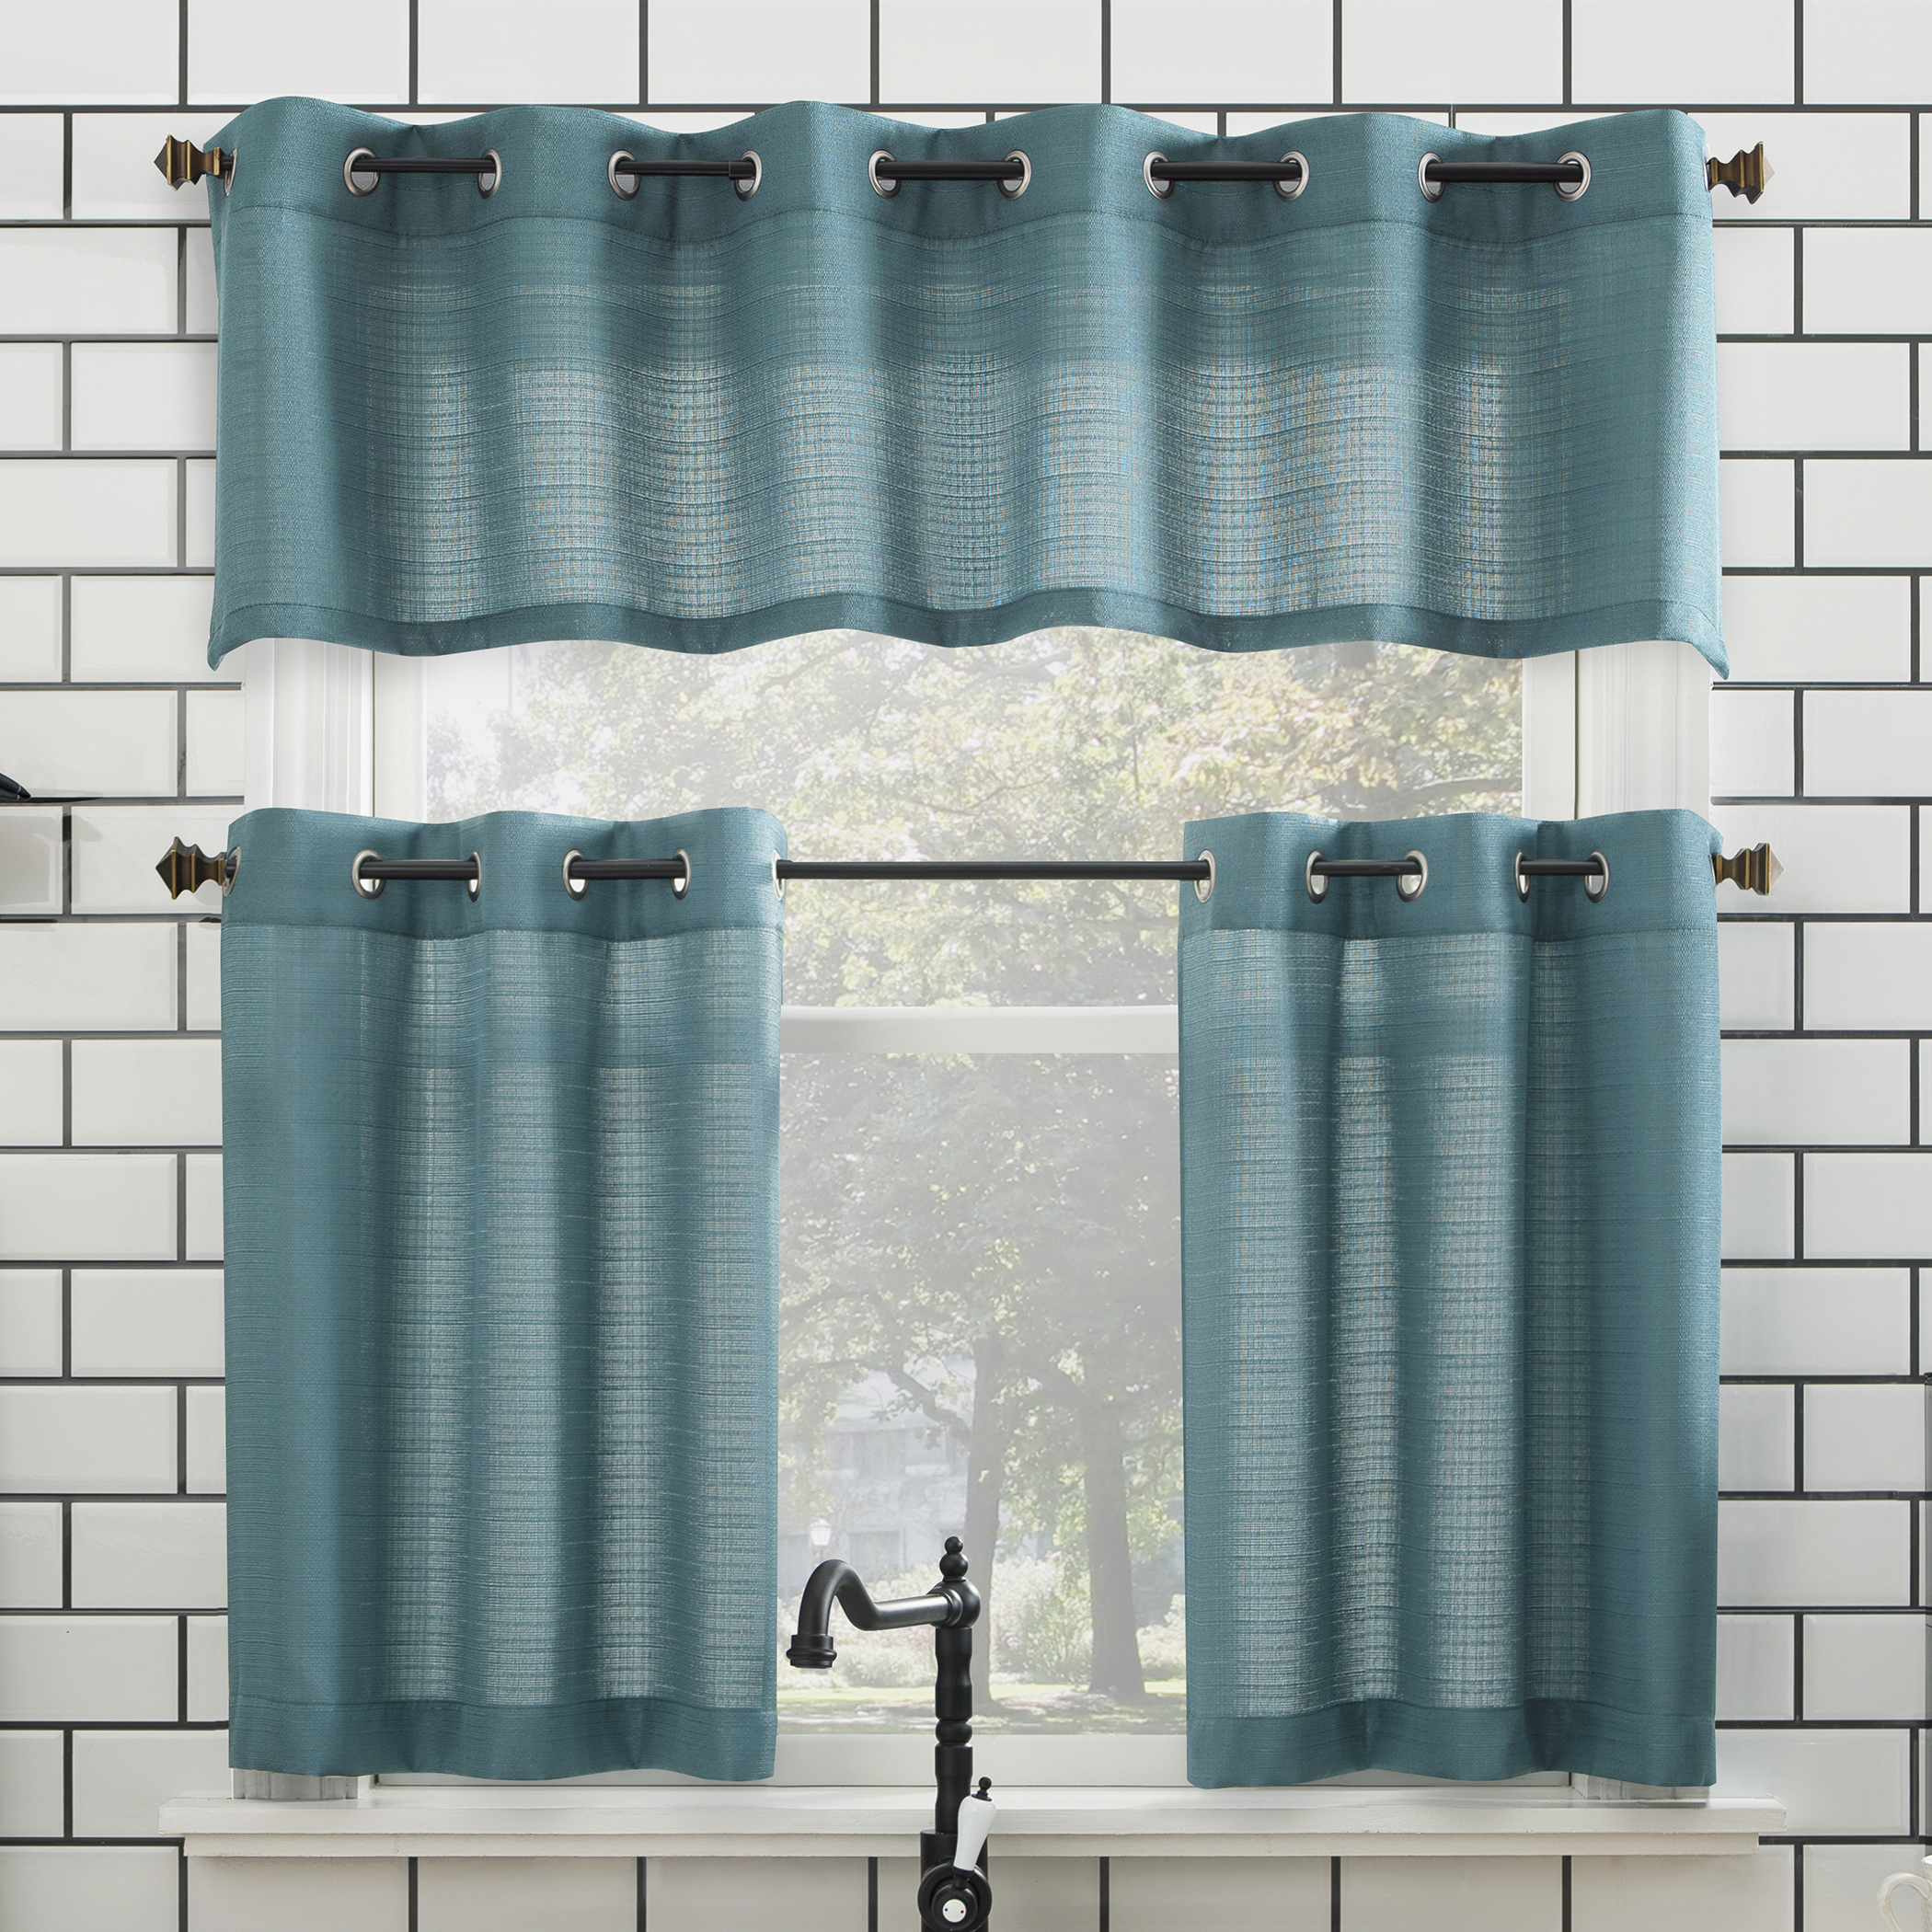 Mainstays Solid Grommet 3 Piece Kitchen Curtain Tier And Valance Set With Regard To Solid Microfiber 3 Piece Kitchen Curtain Valance And Tiers Sets (View 18 of 20)